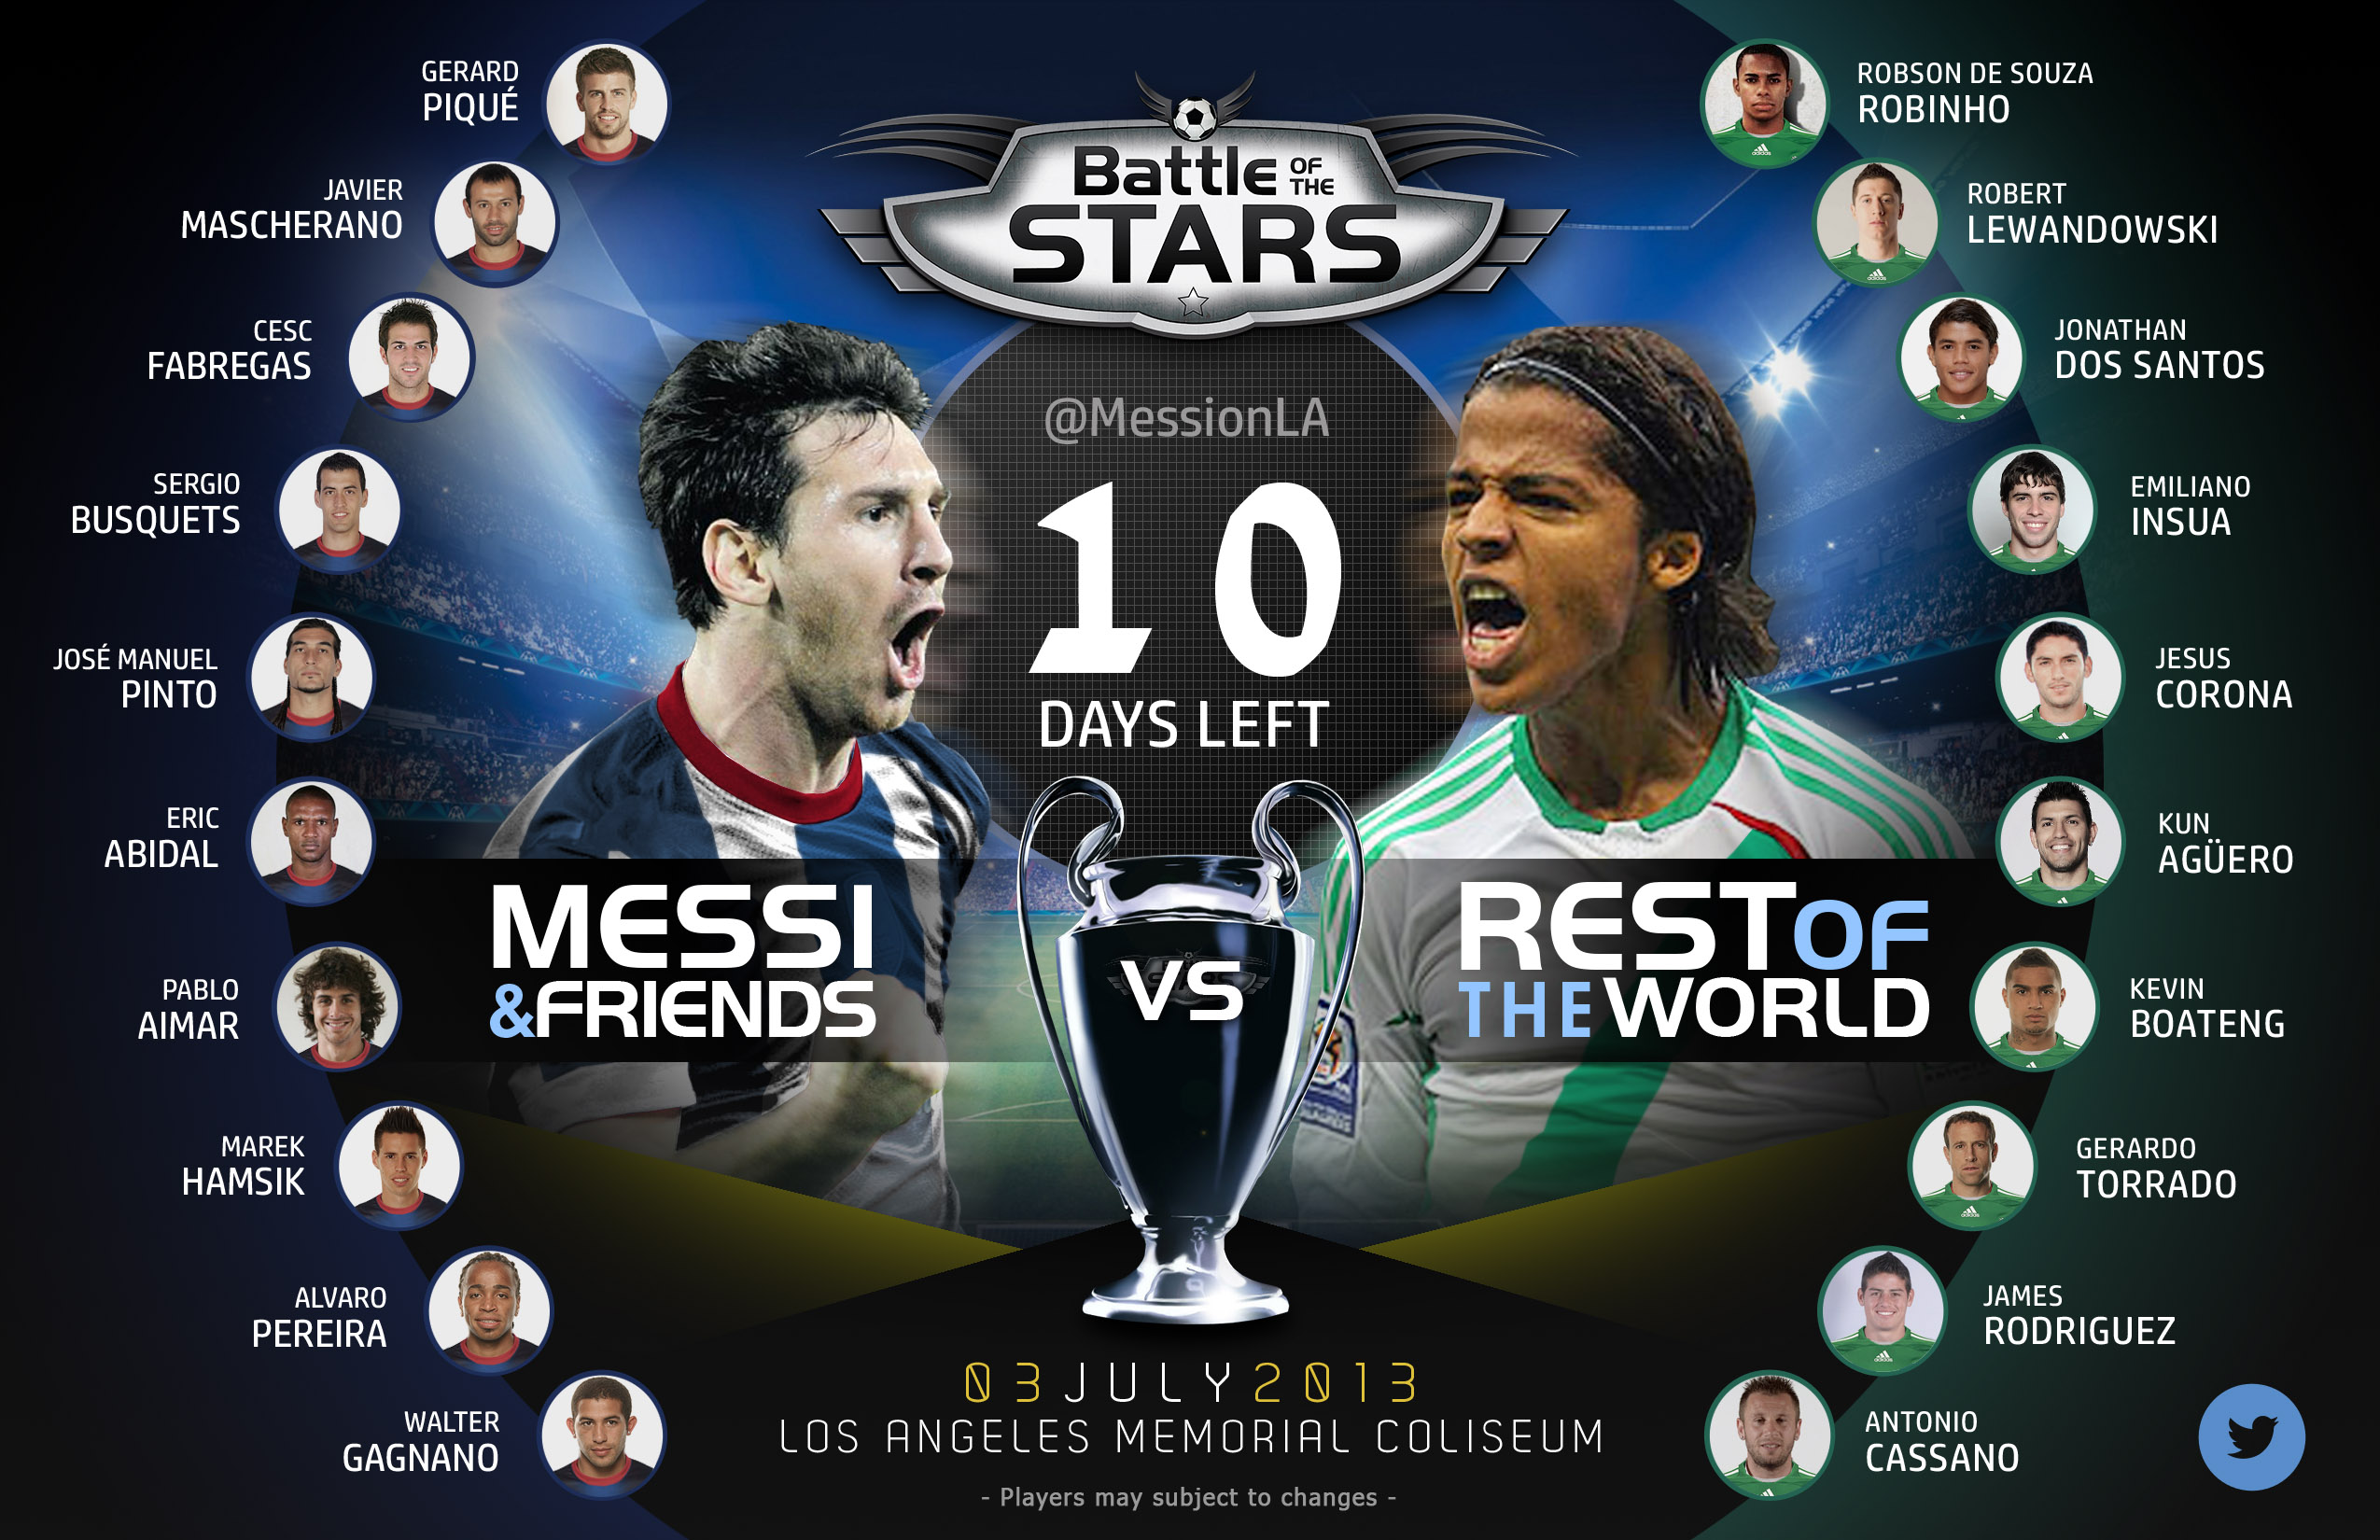 Messi & Friends vs. The Rest of the World – Nestor Colombo